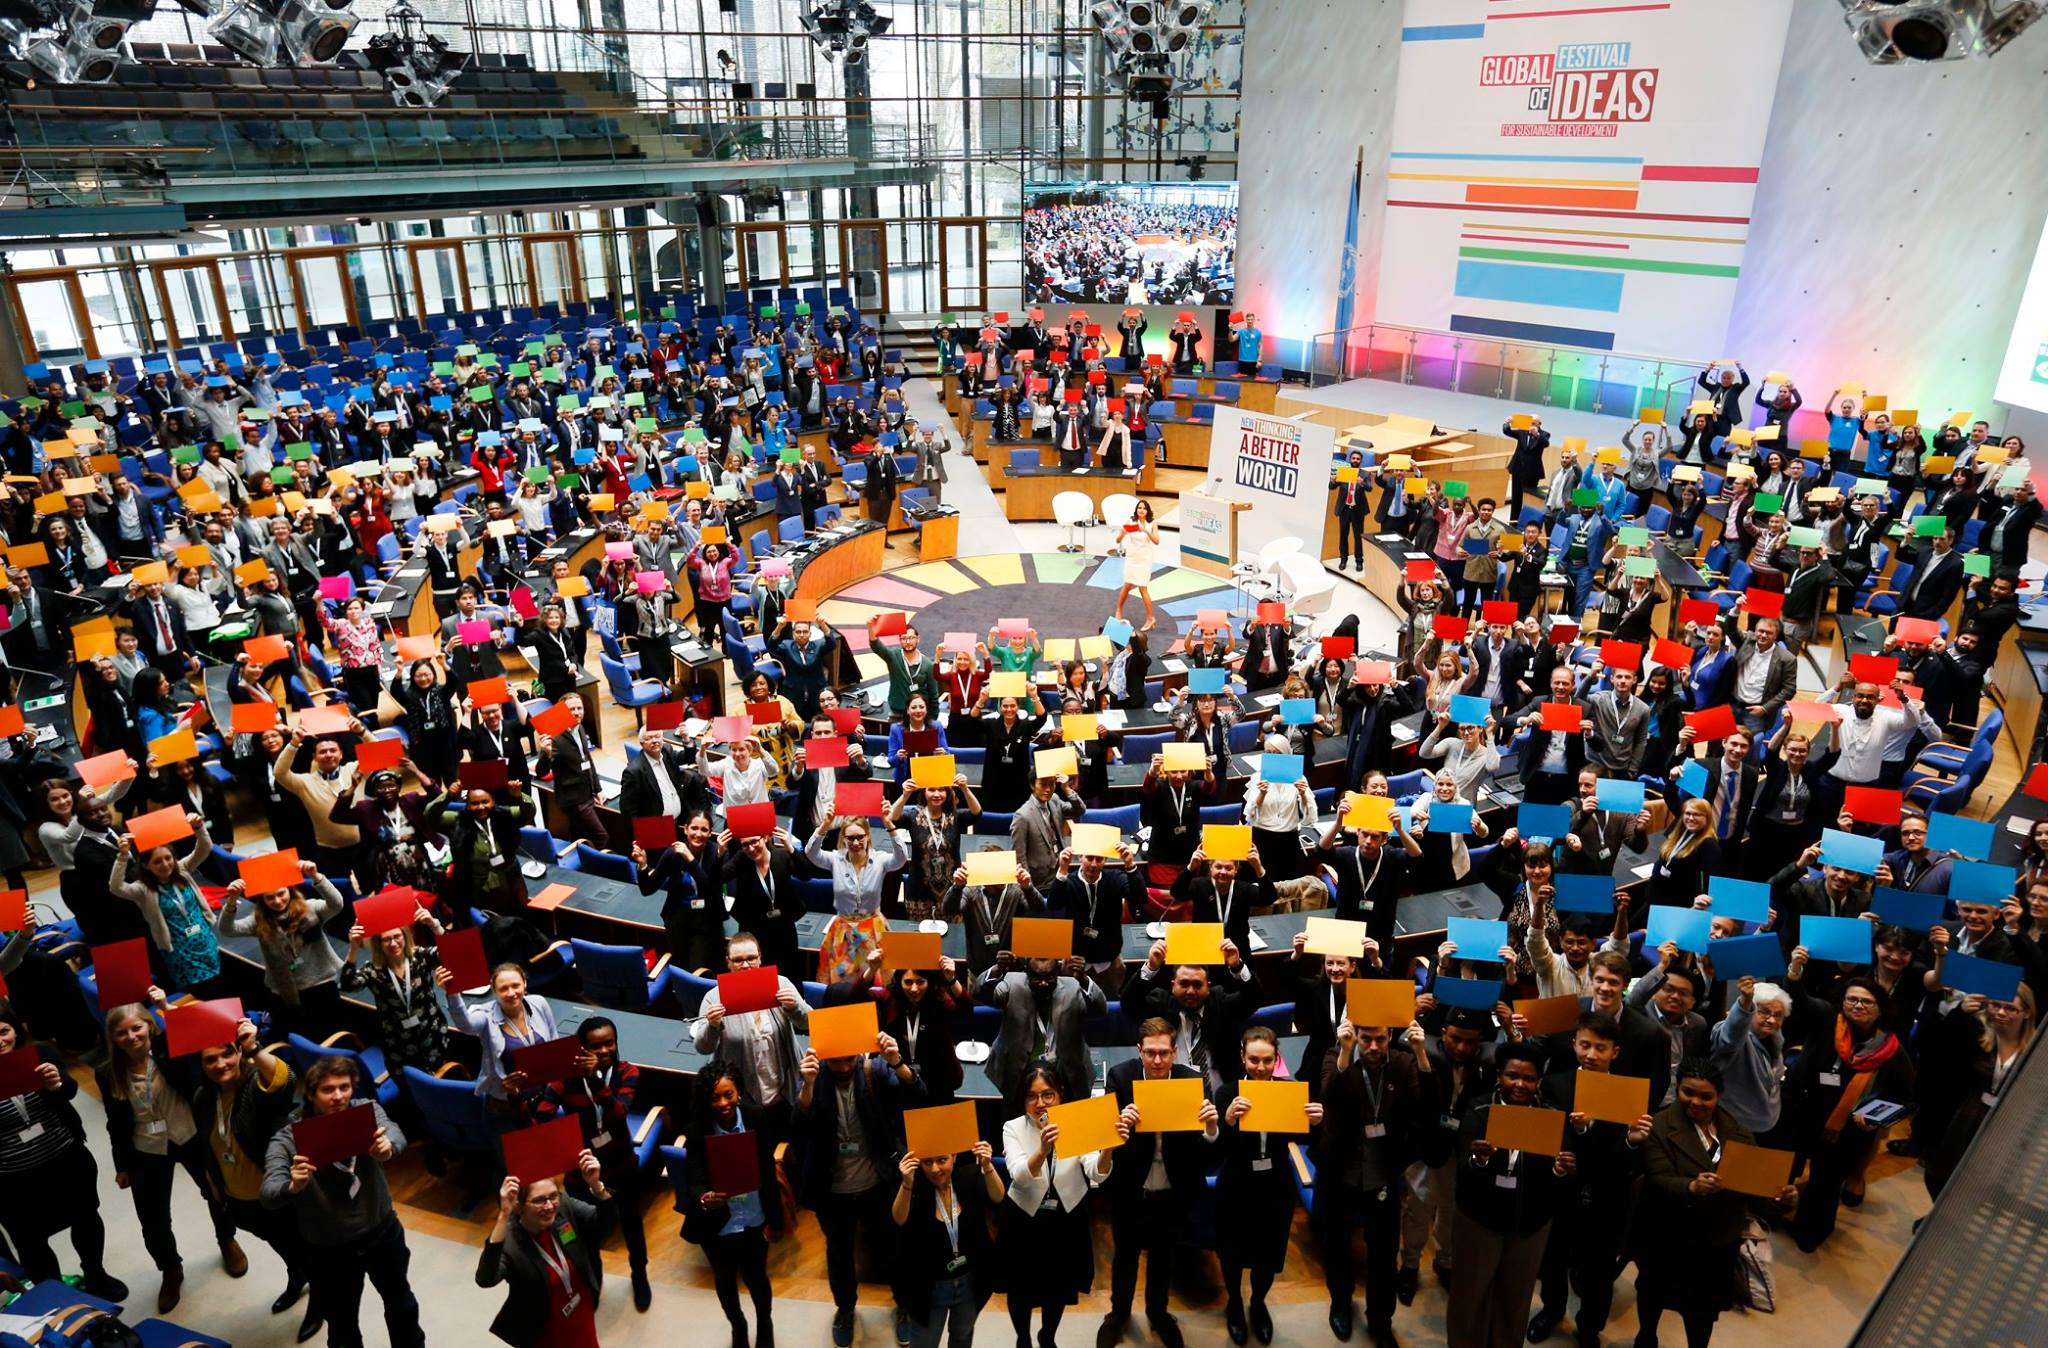 A revolution is required in the way we think about international development if we are to meet the #SDGs! It's happening now at #GFI4SD https://t.co/poqBtKZL27